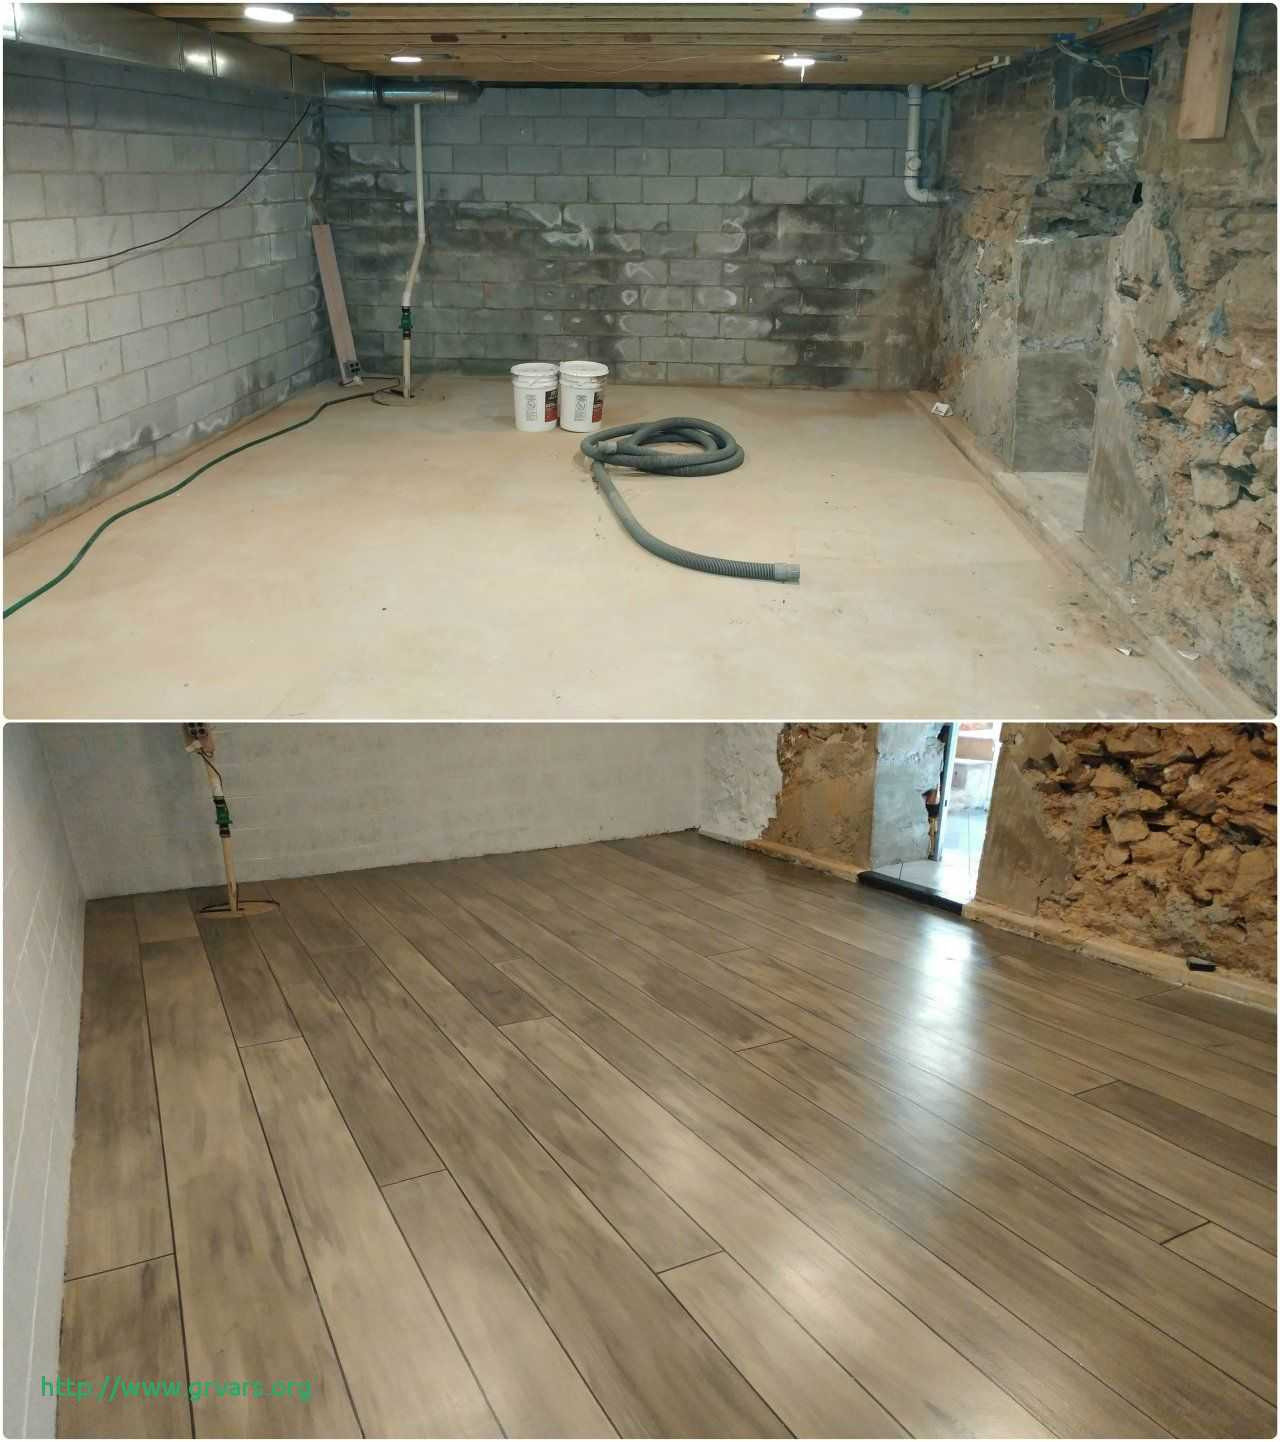 refinishing hardwood floors grey of 25 charmant does hardwood floors increase home value ideas blog in basement refinished with concrete wood ardmore pa